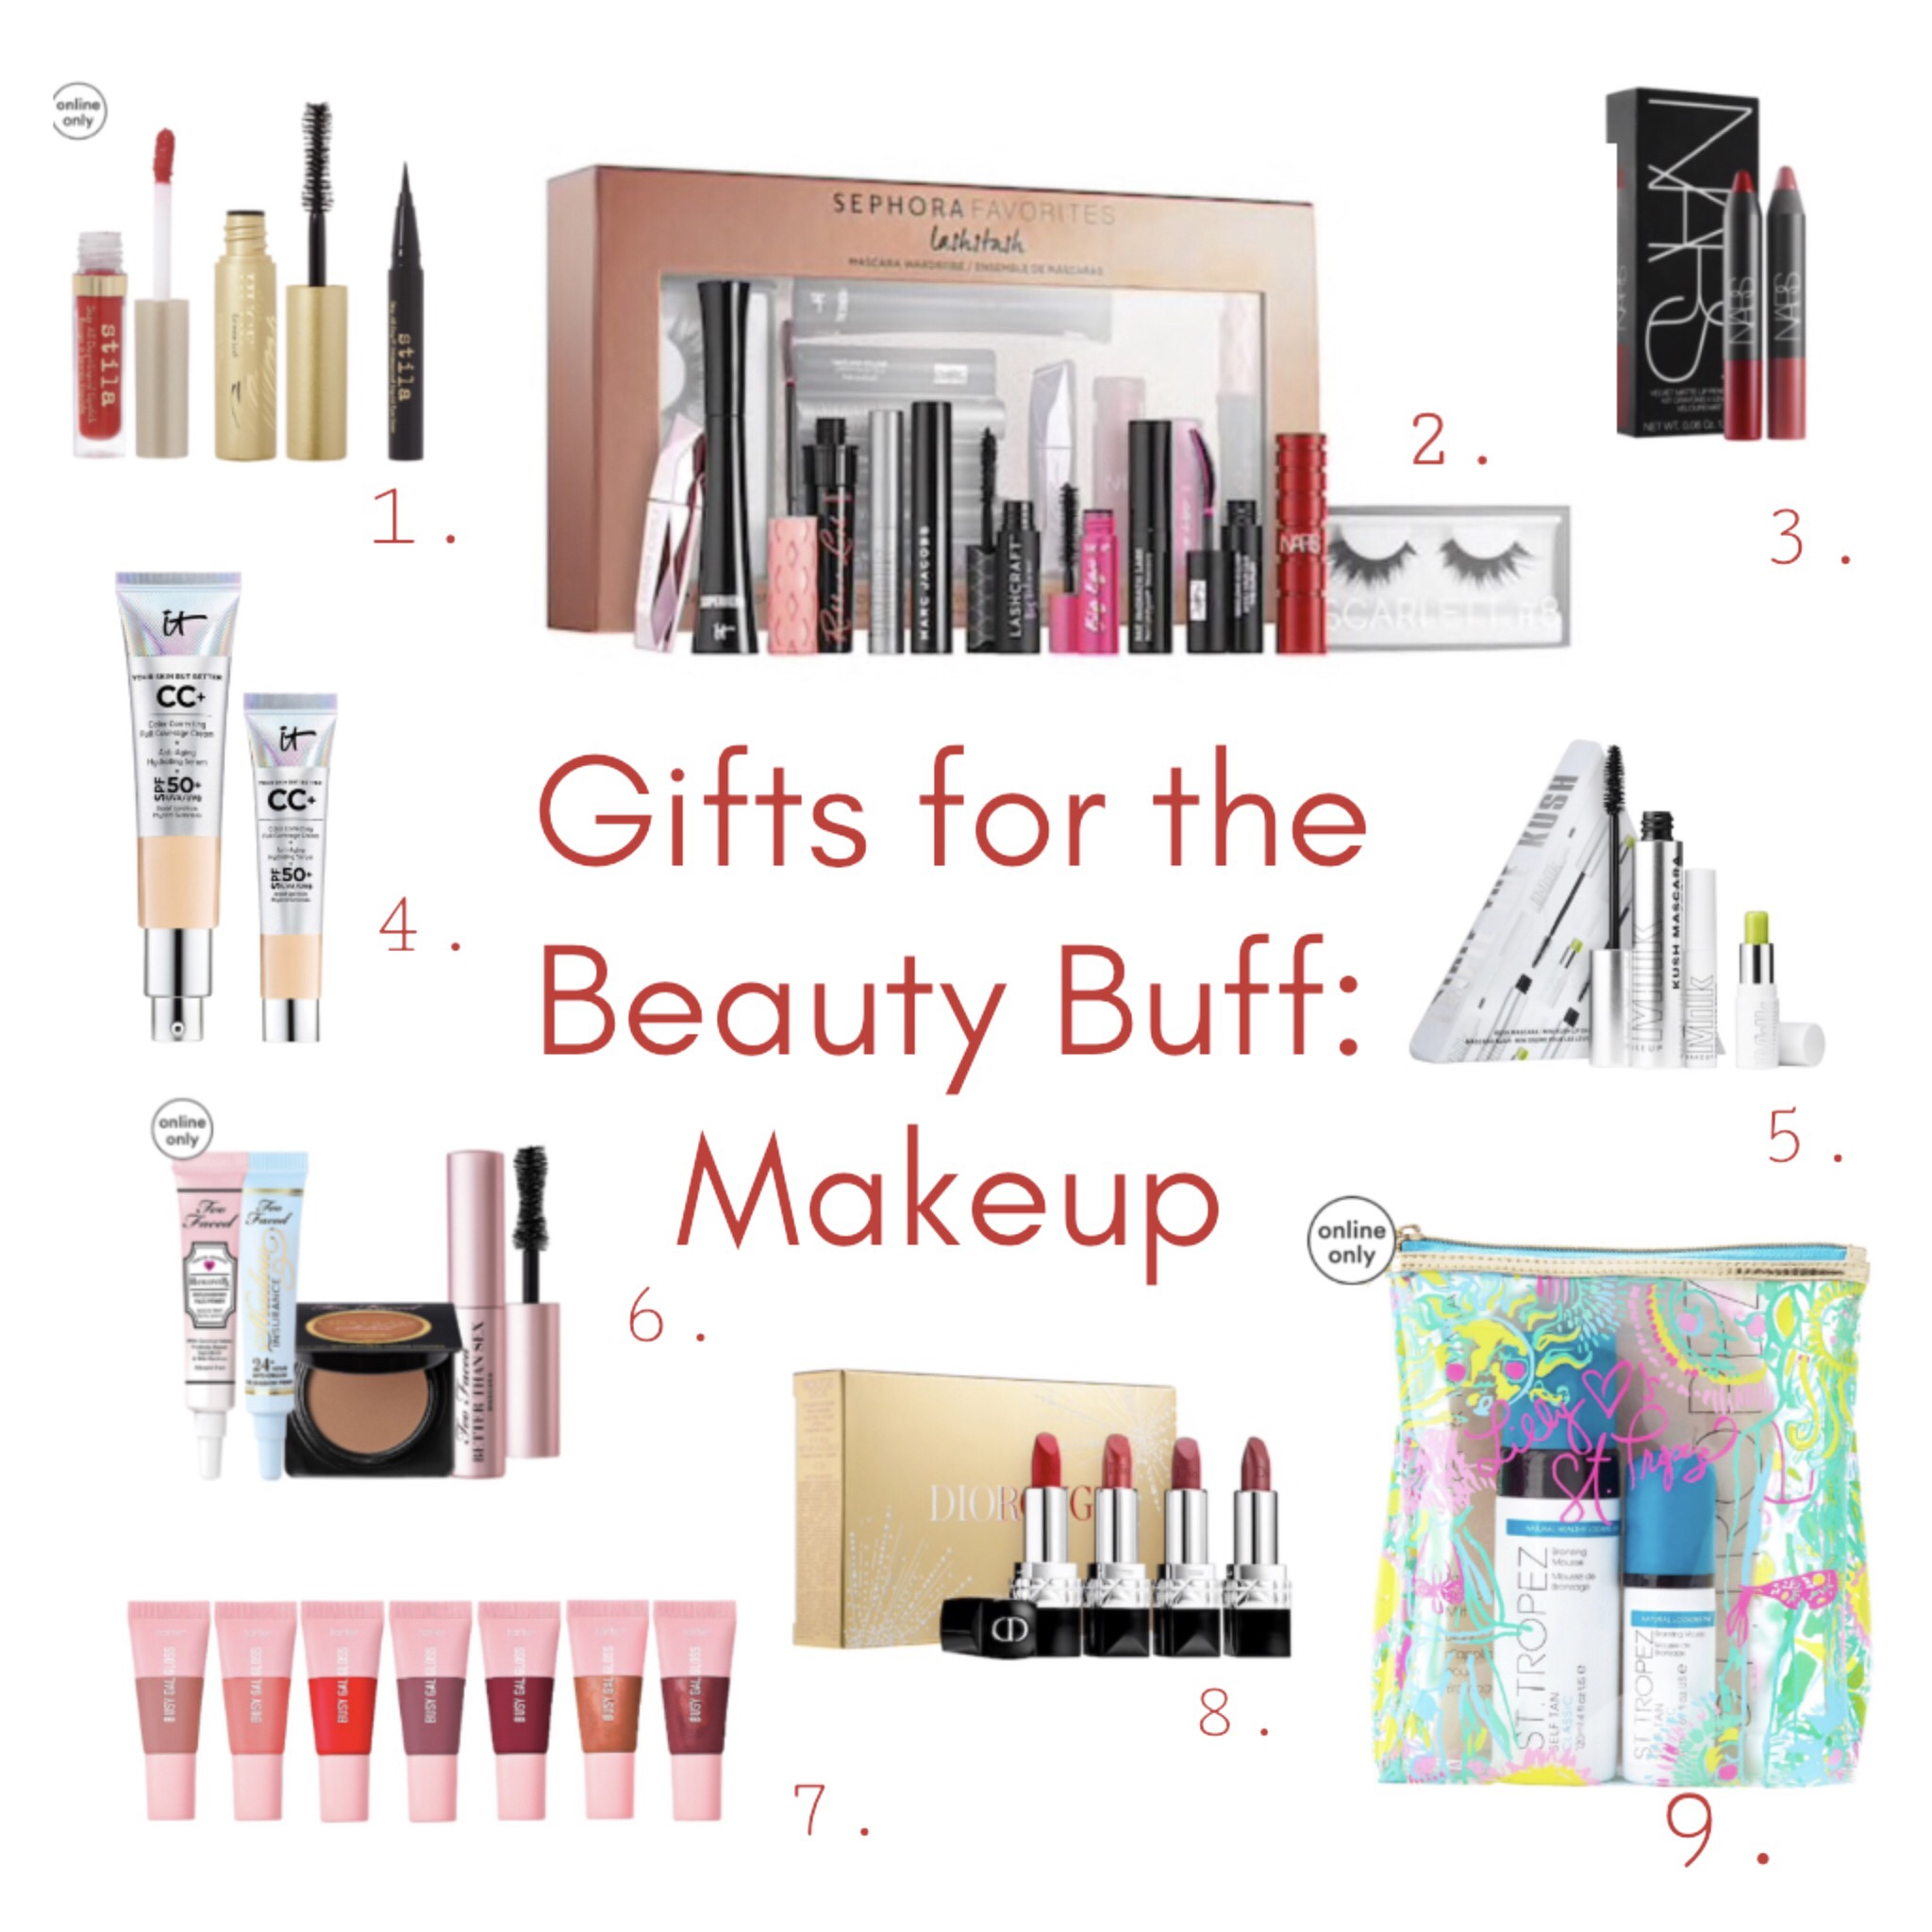 Gift Guide | Makeup Gift Sets They're Sure to Love